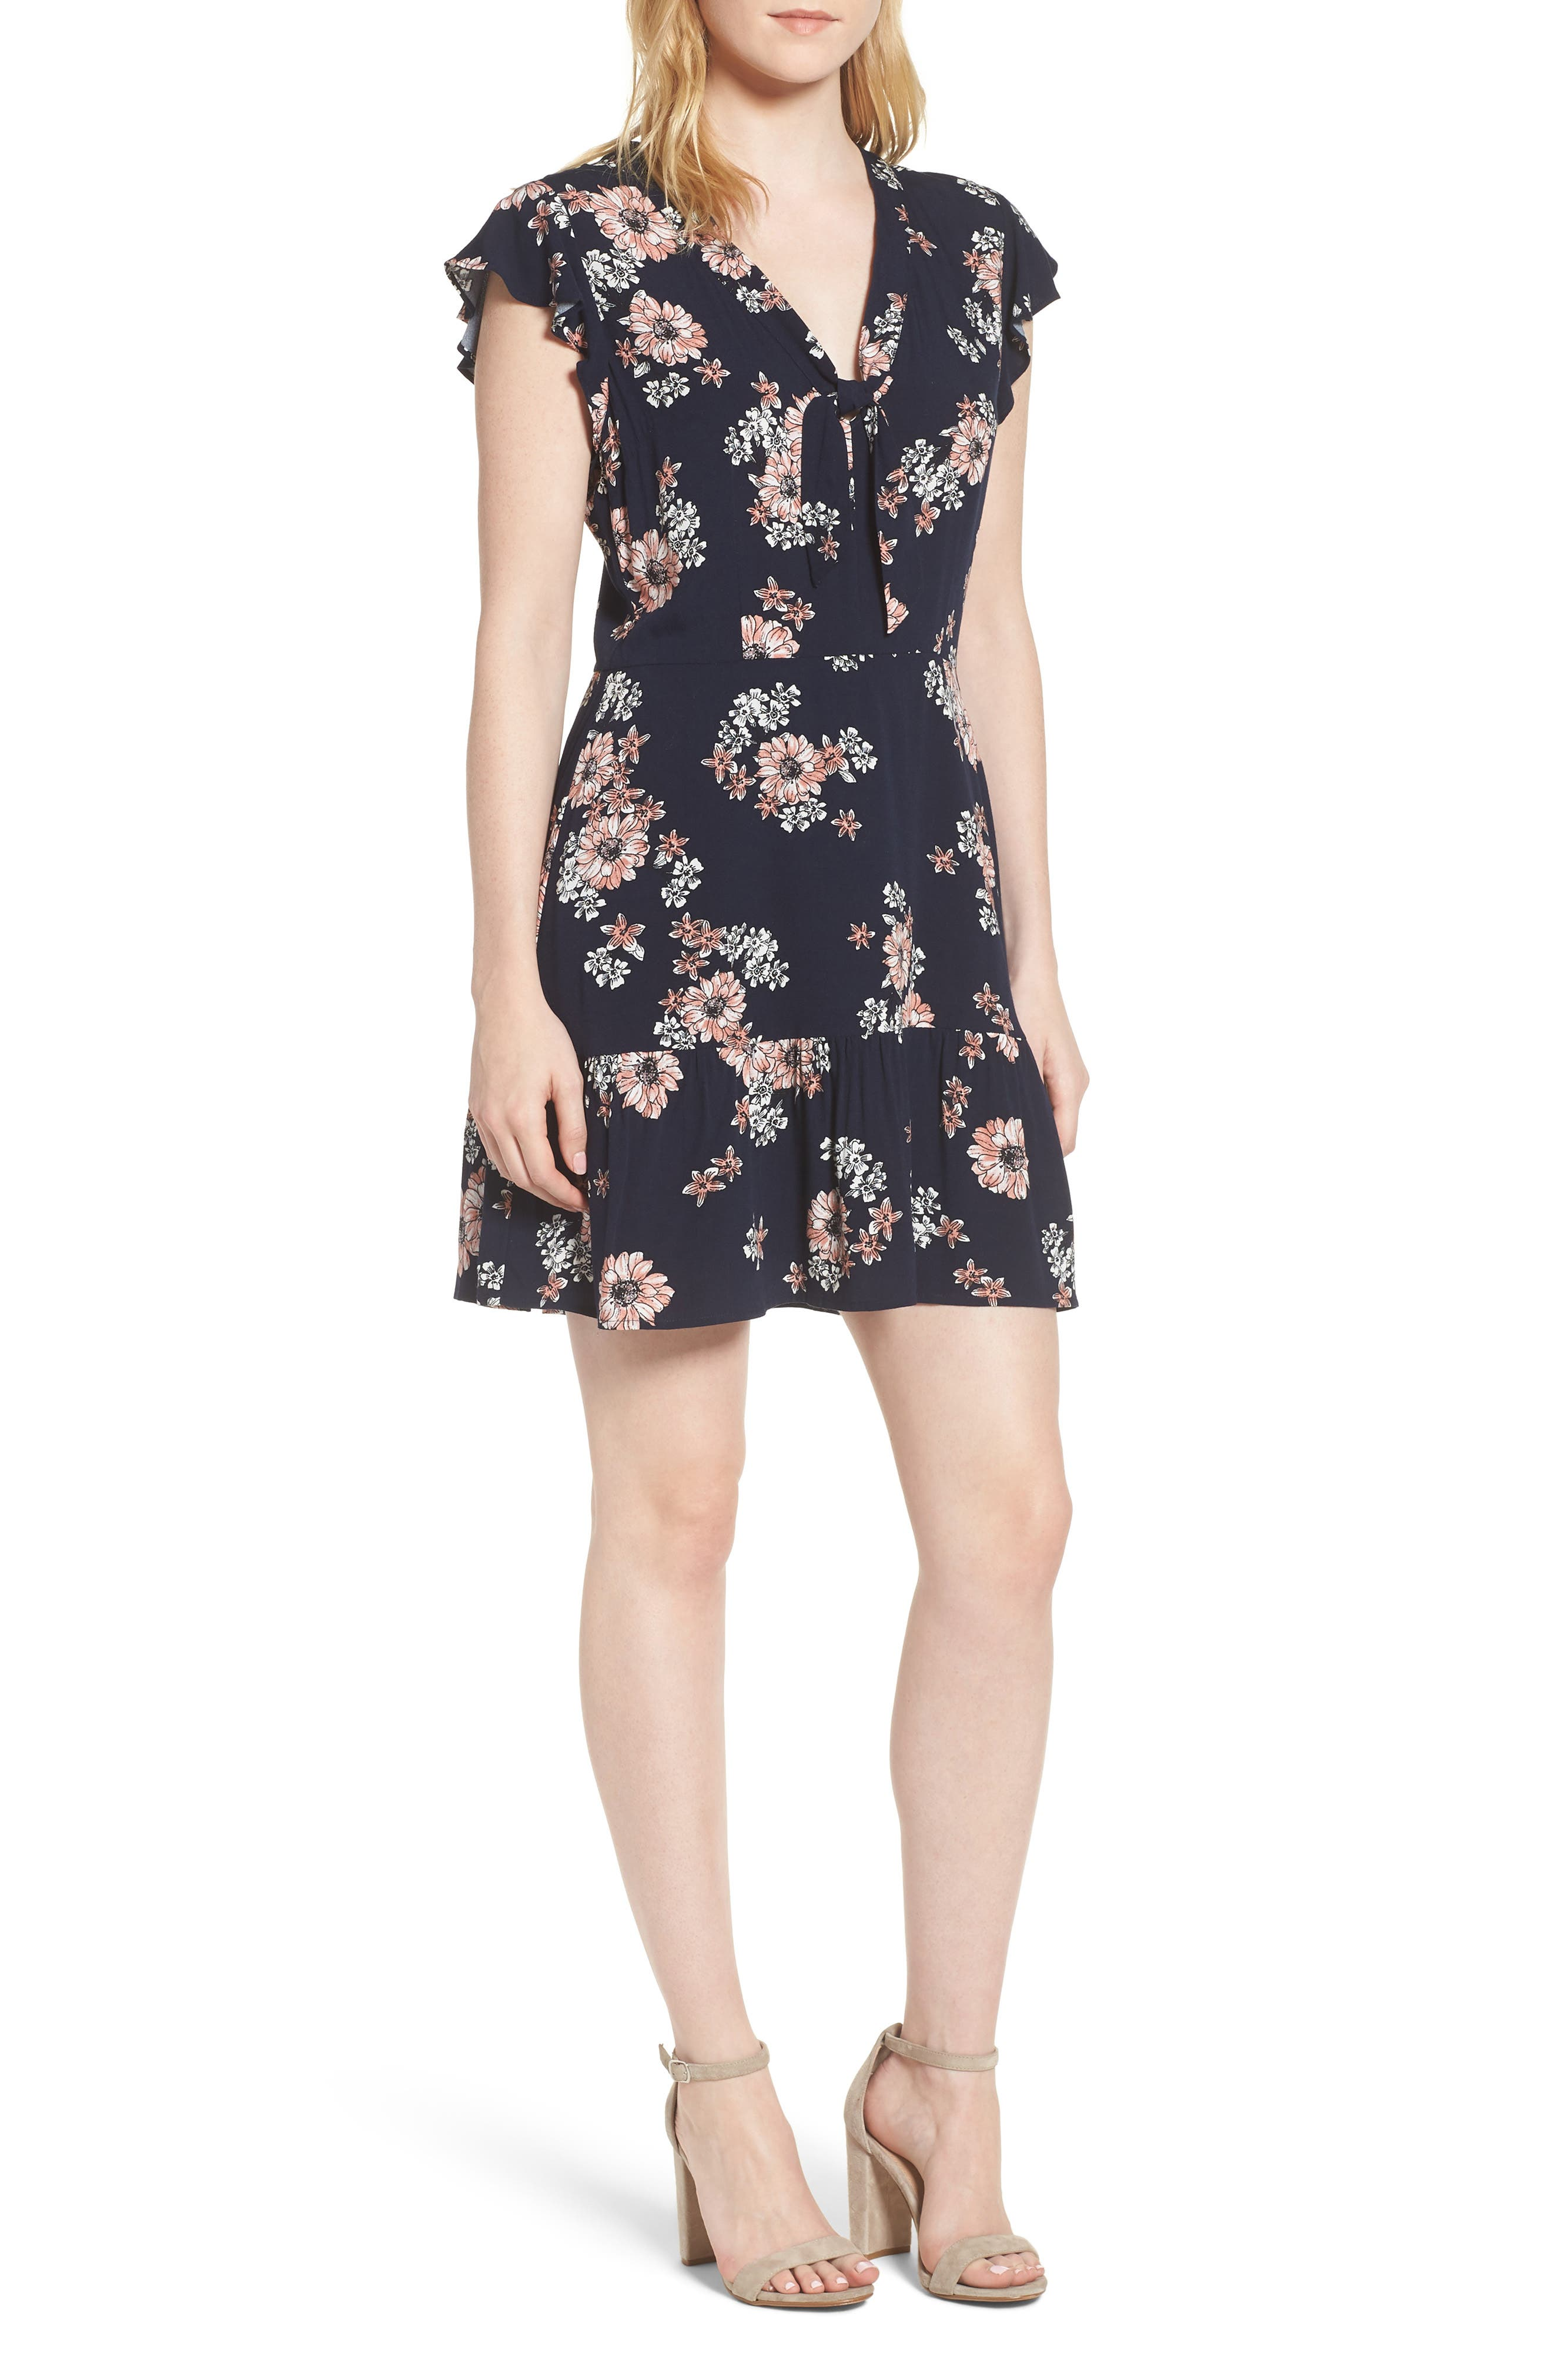 Alternate Image 1 Selected - cupcakes and cashmere Dalma Floral Print Dress